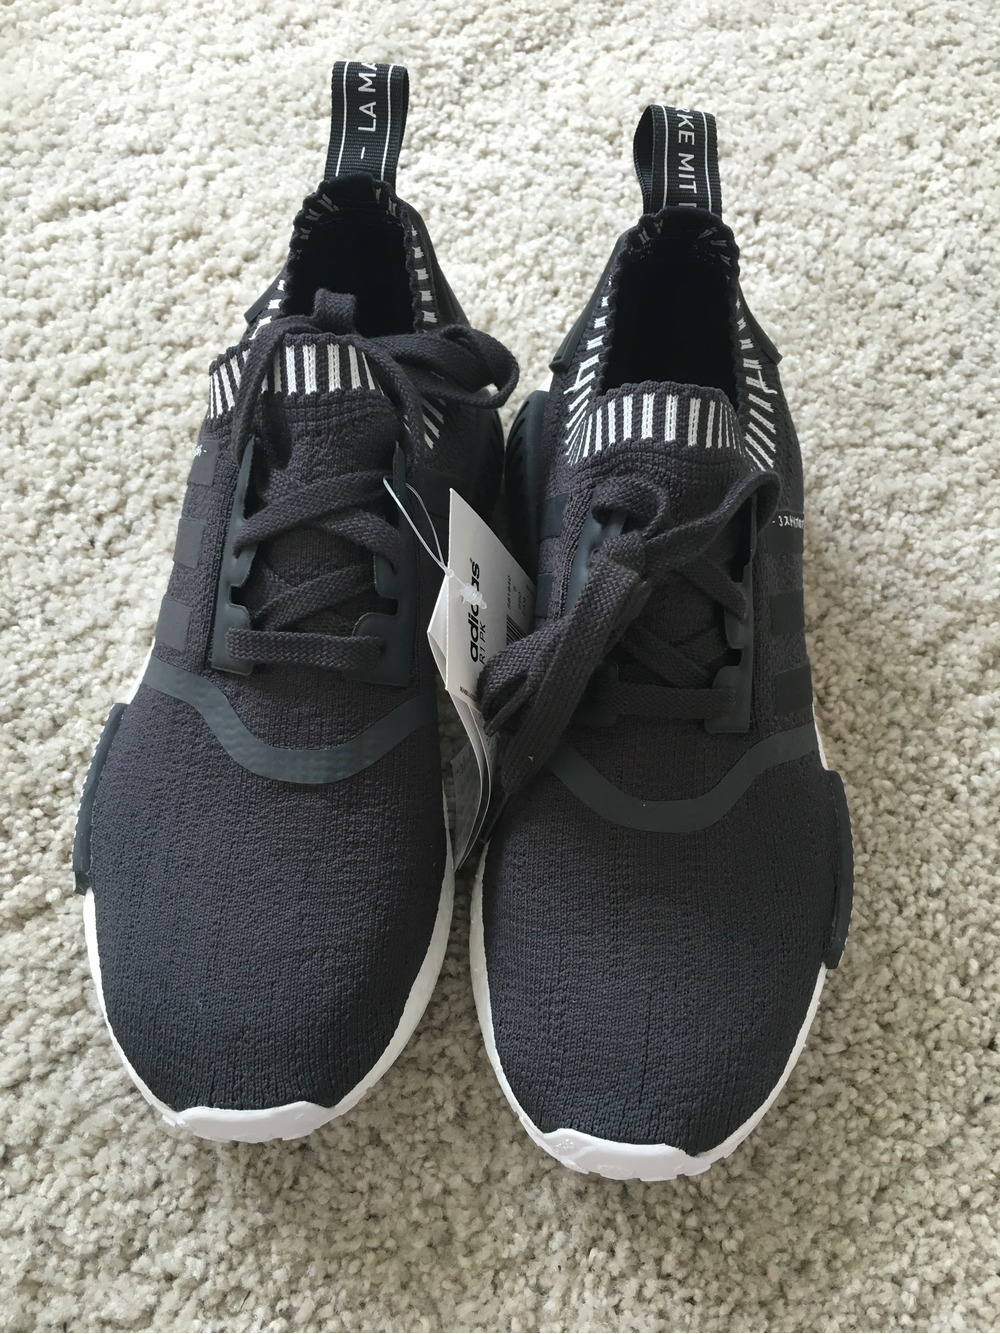 adidas NMD XR1 PK OG BY1909 core black/core box